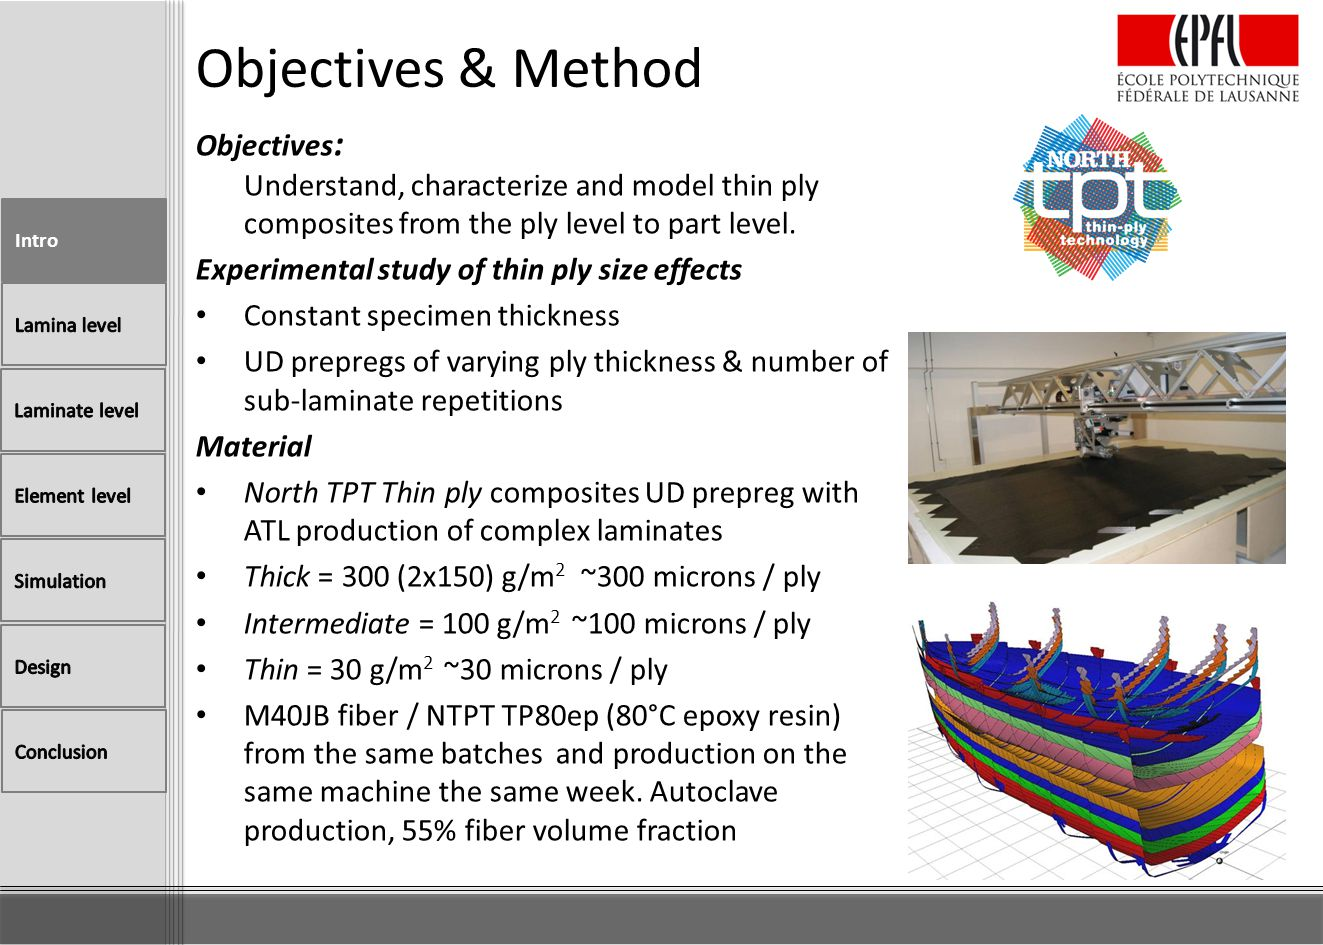 Objectives : Understand, characterize and model thin ply composites from the ply level to part level. Experimental study of thin ply size effects Cons